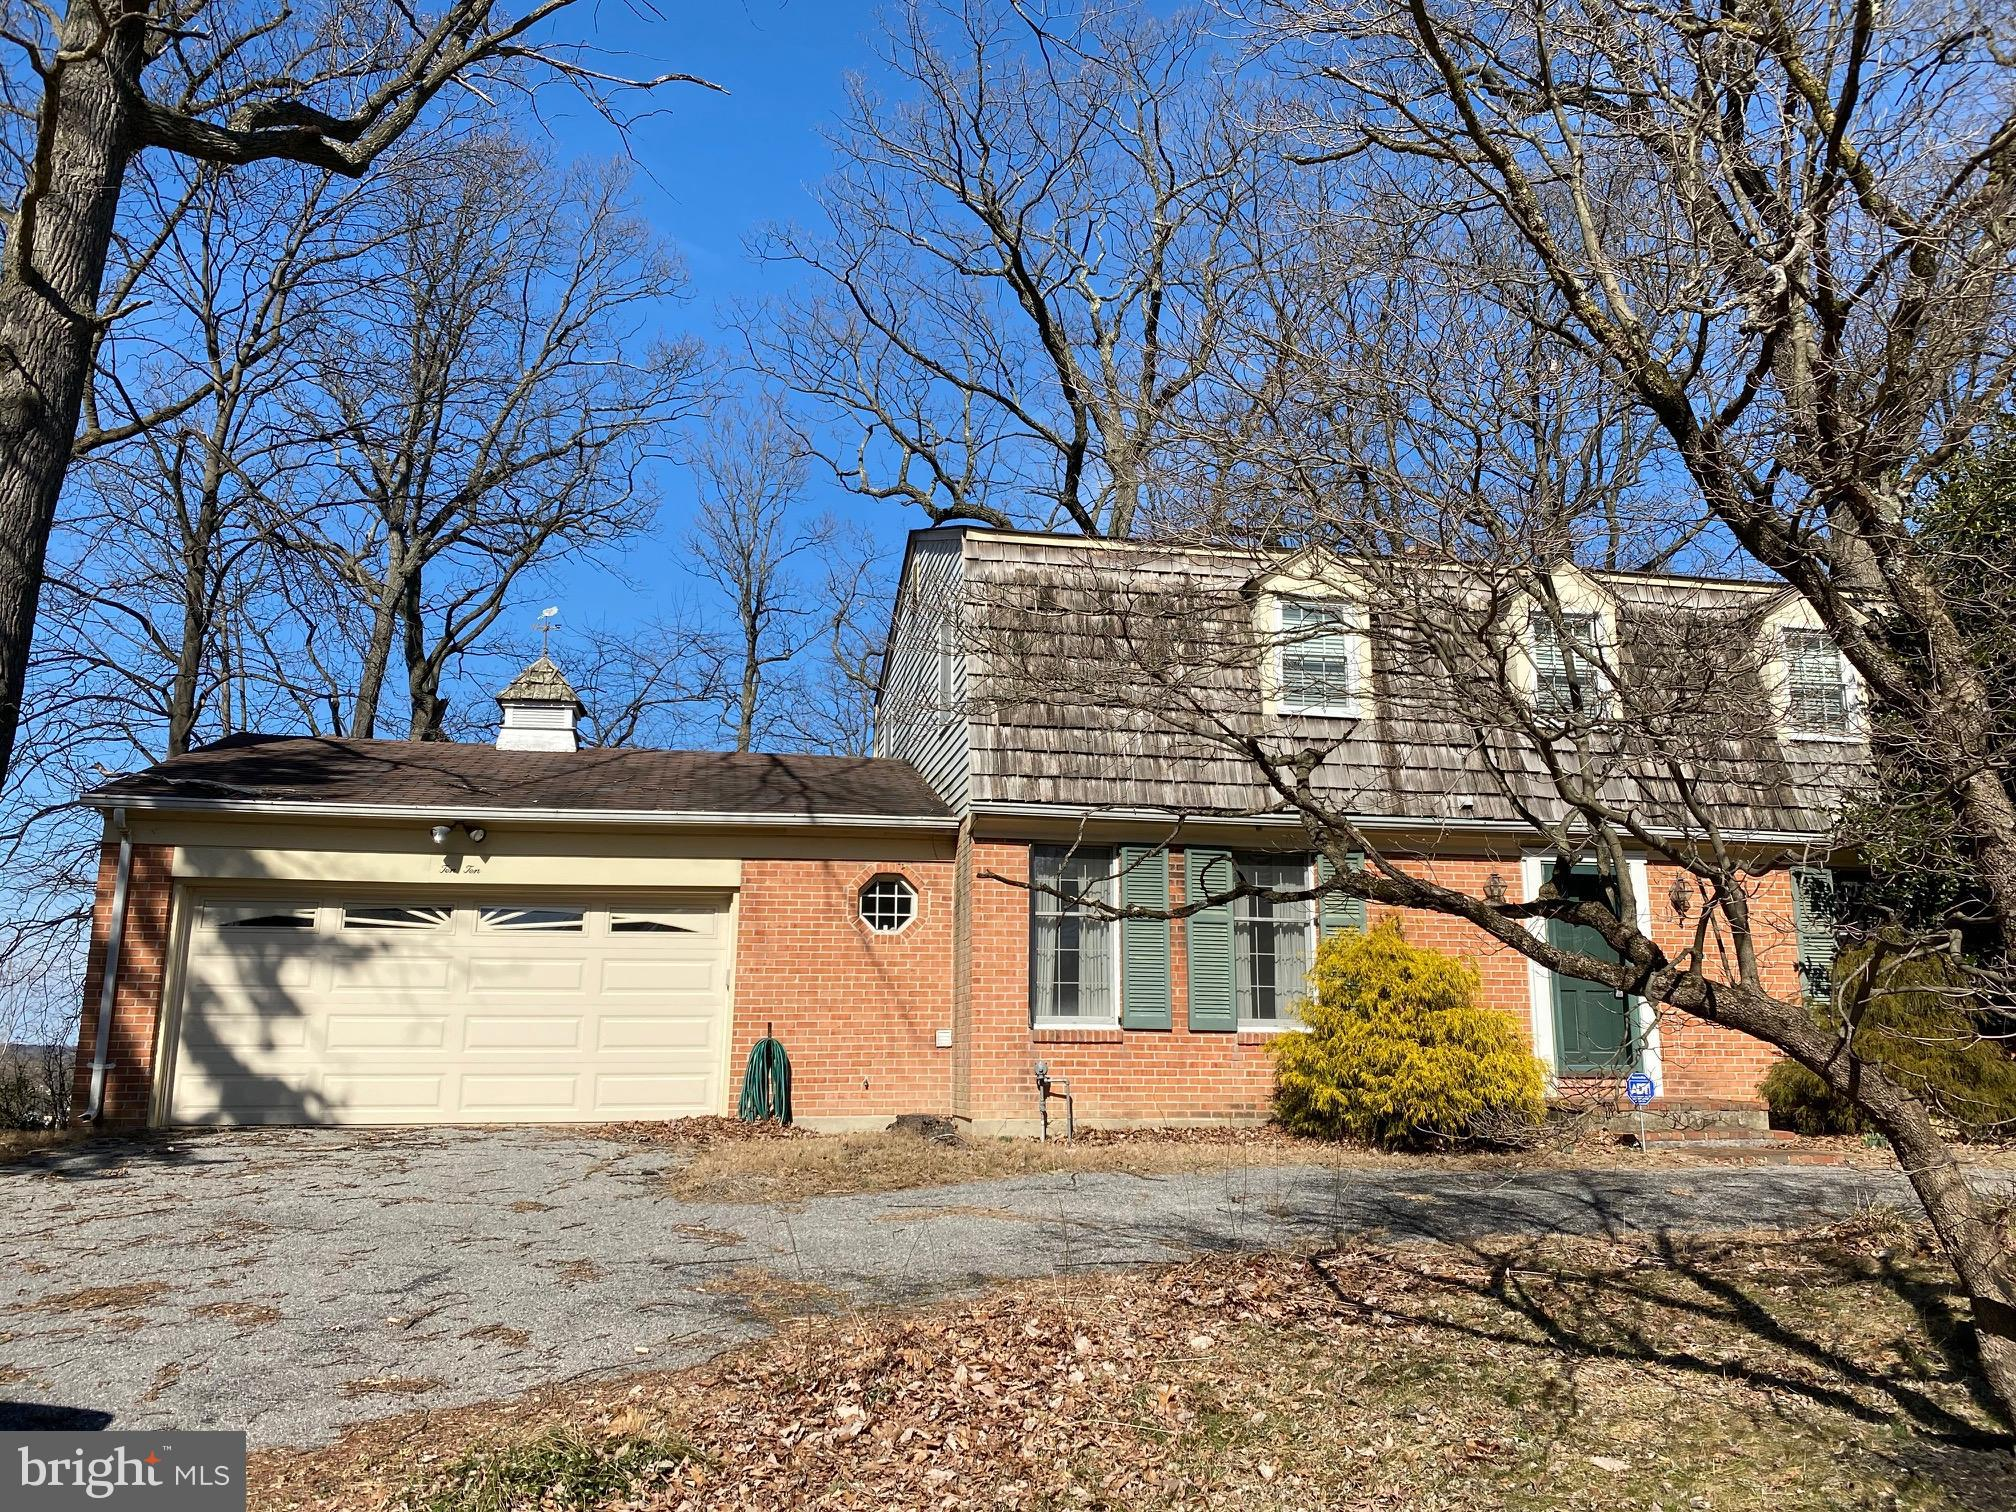 1010 W JOPPA ROAD, TOWSON, Maryland 21204, 4 Bedrooms Bedrooms, ,3 BathroomsBathrooms,Single Family,For Sale,1010 W JOPPA ROAD,MDBC522026